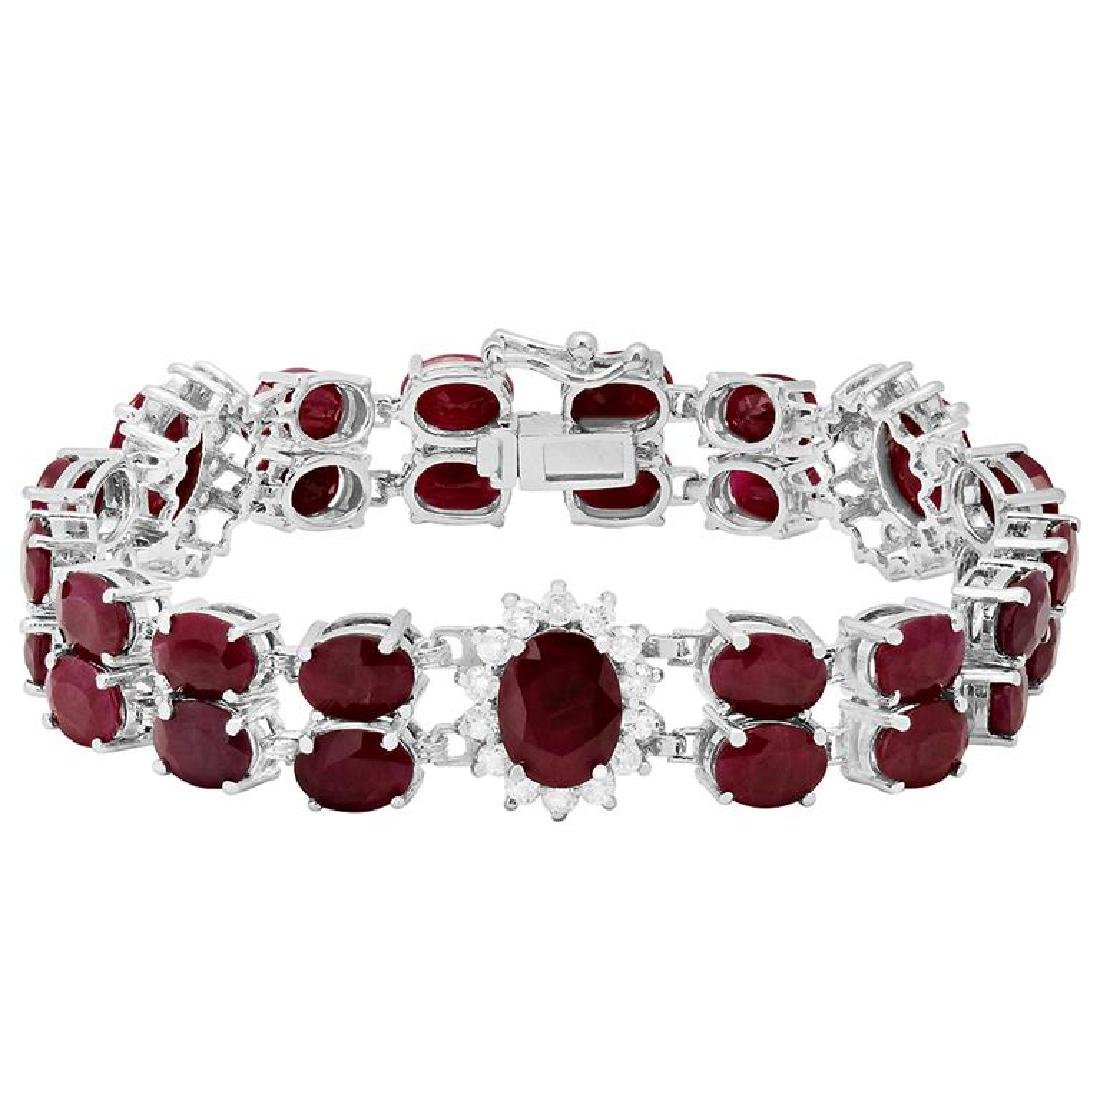 14k White Gold 43.10ct Ruby 1.65ct Diamond Bracelet